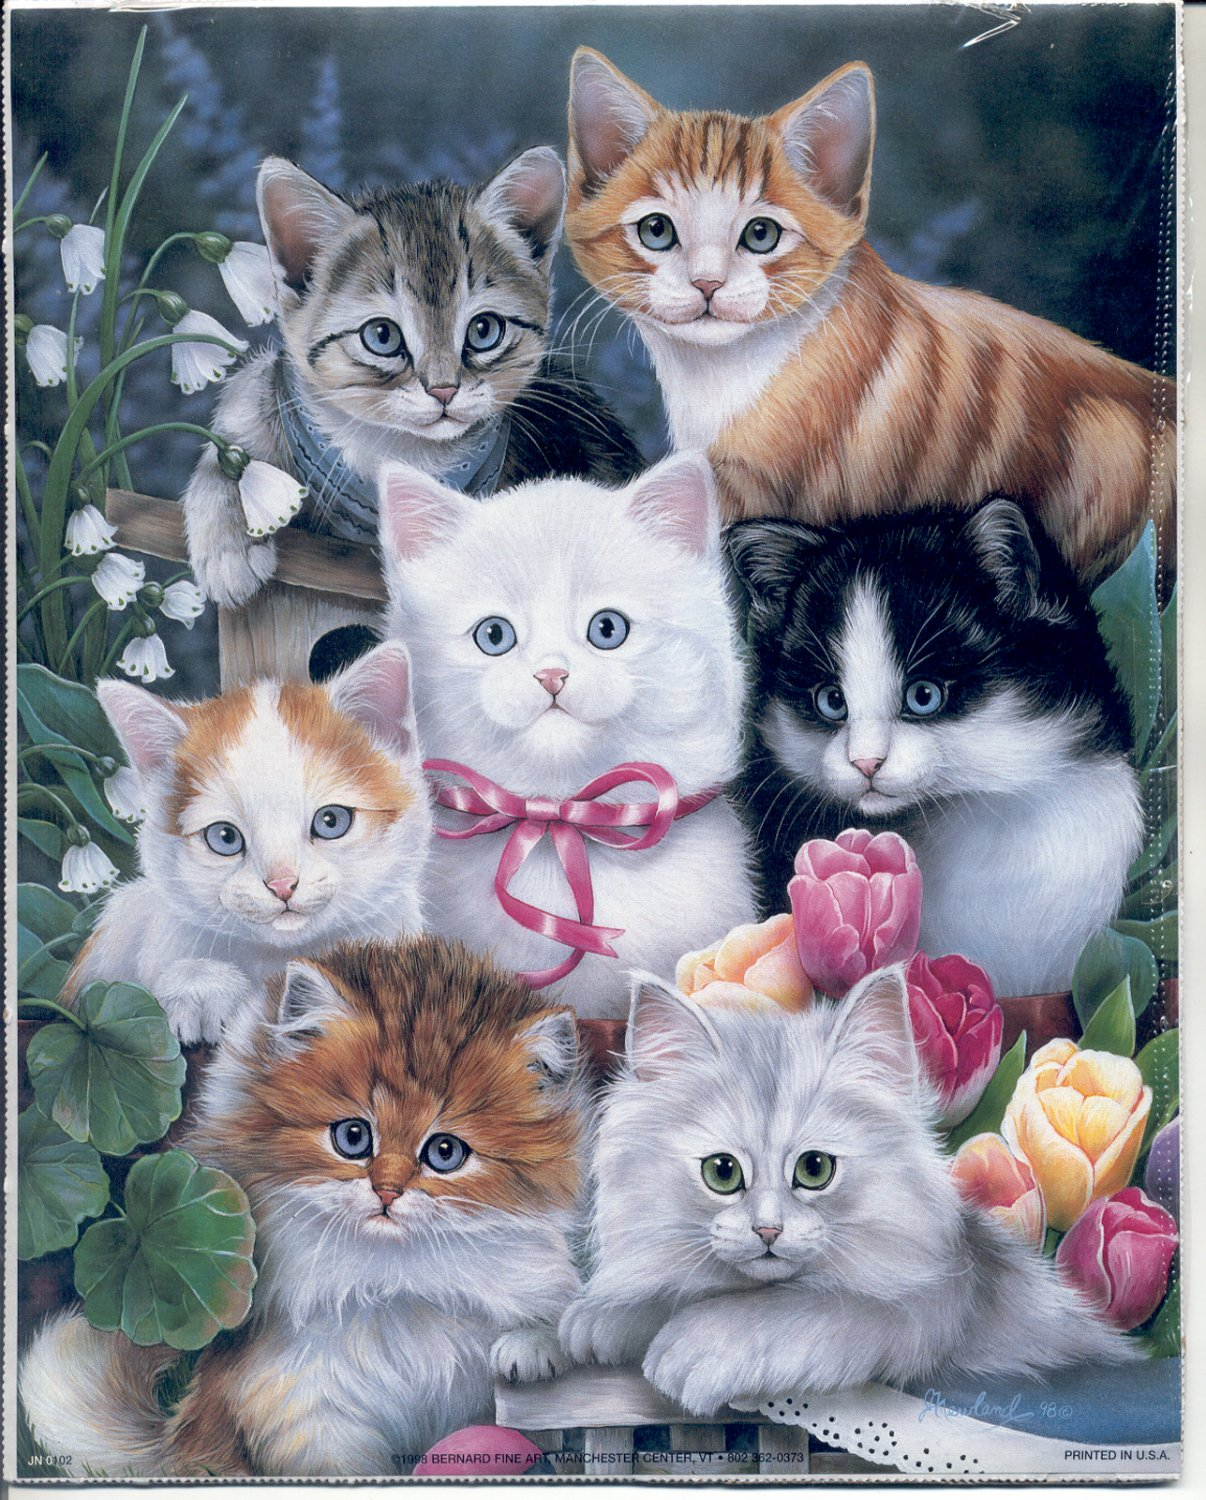 1998 PRINT #54:  A BUNCH OF KITTENS - CATS IN FLOWERS 8 X 10 MINT